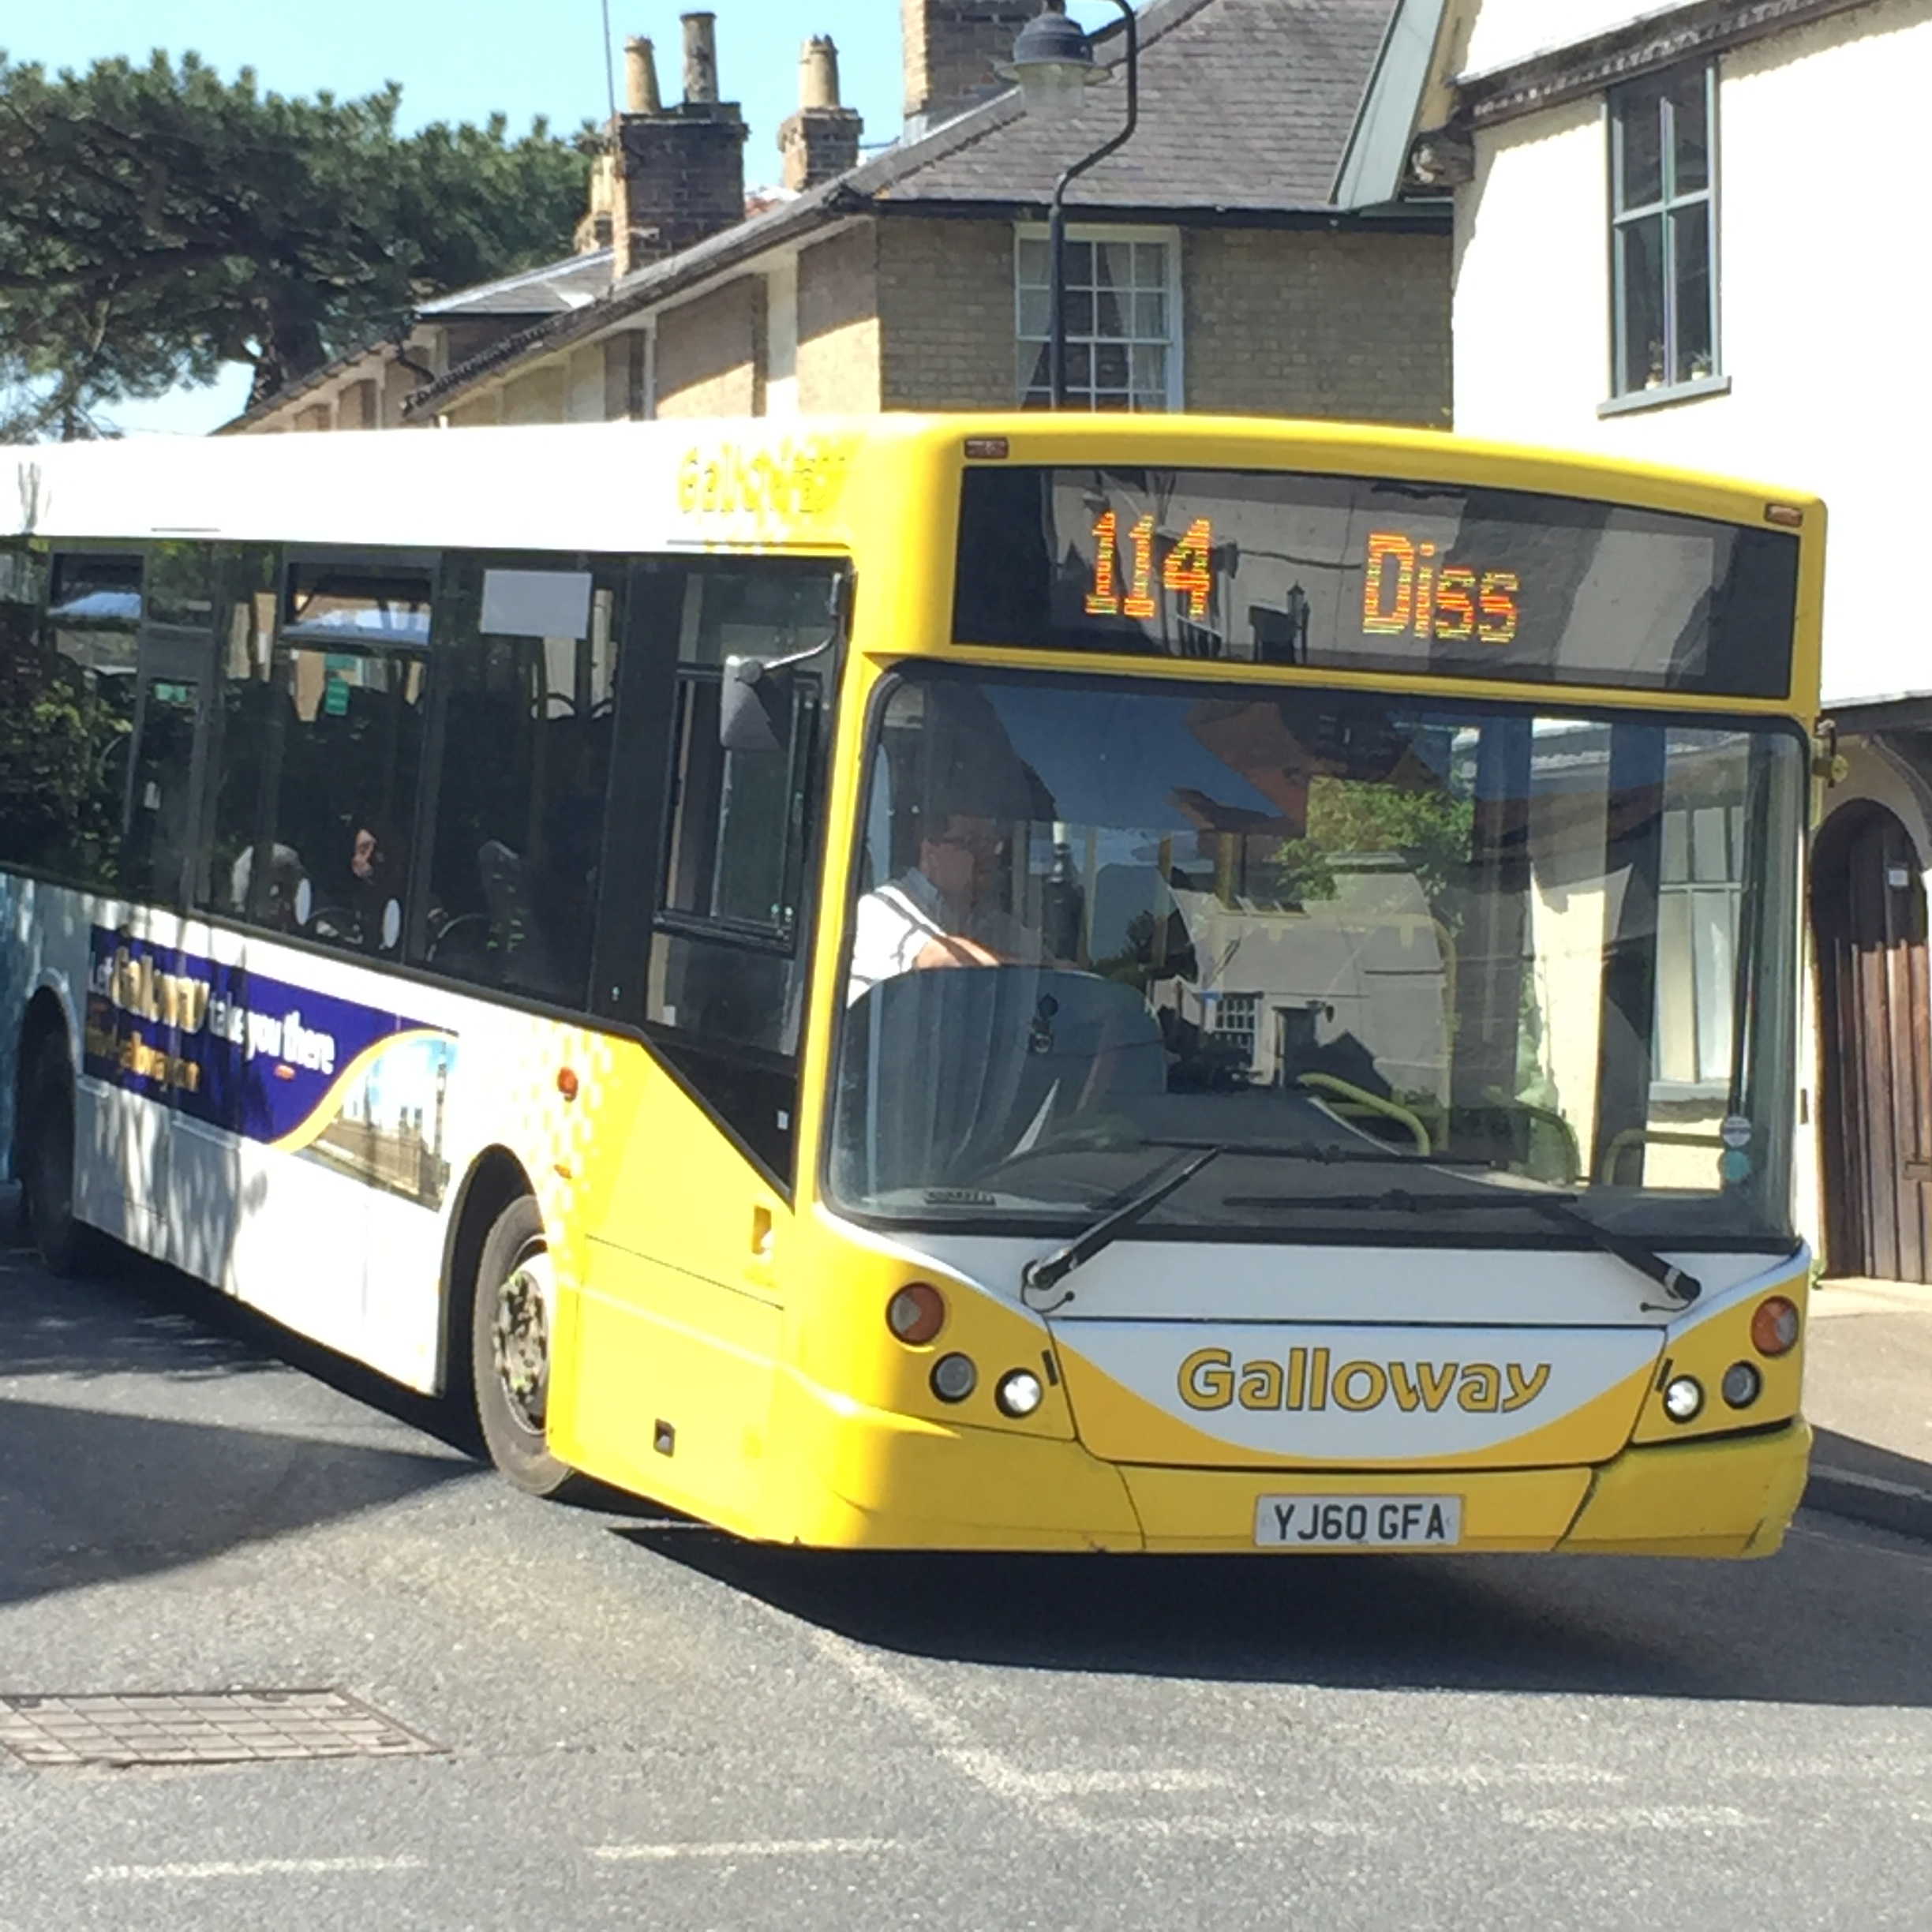 improvements to 113 and 114 bus services